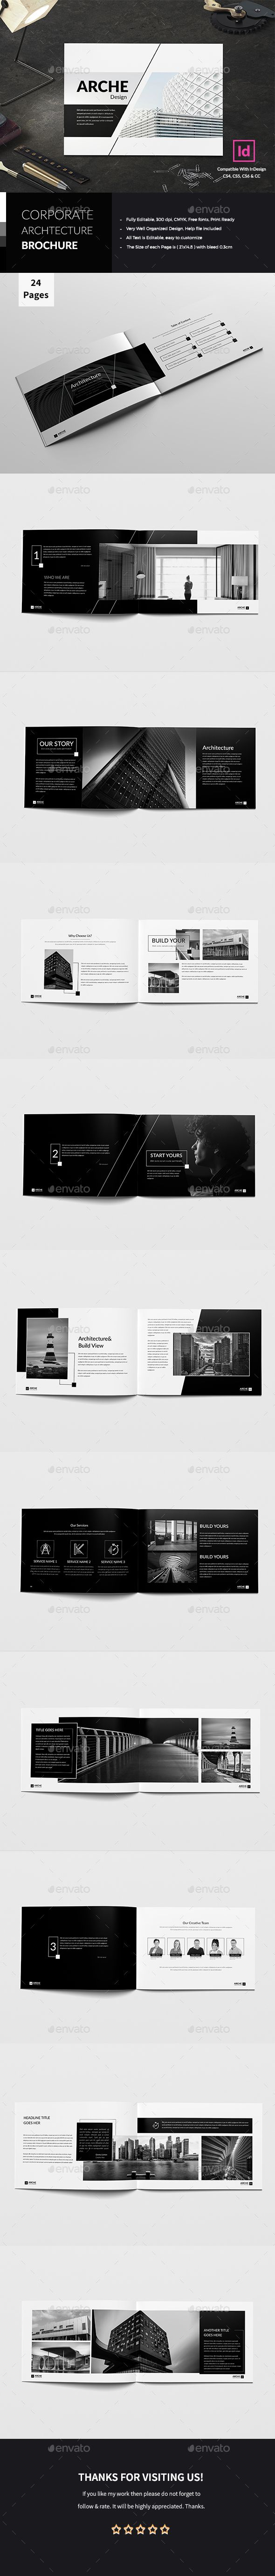 Corporate Architecture Brochure — InDesign INDD #minimal #grey • Available here → https://graphicriver.net/item/corporate-architecture-brochure/20924457?ref=pxcr